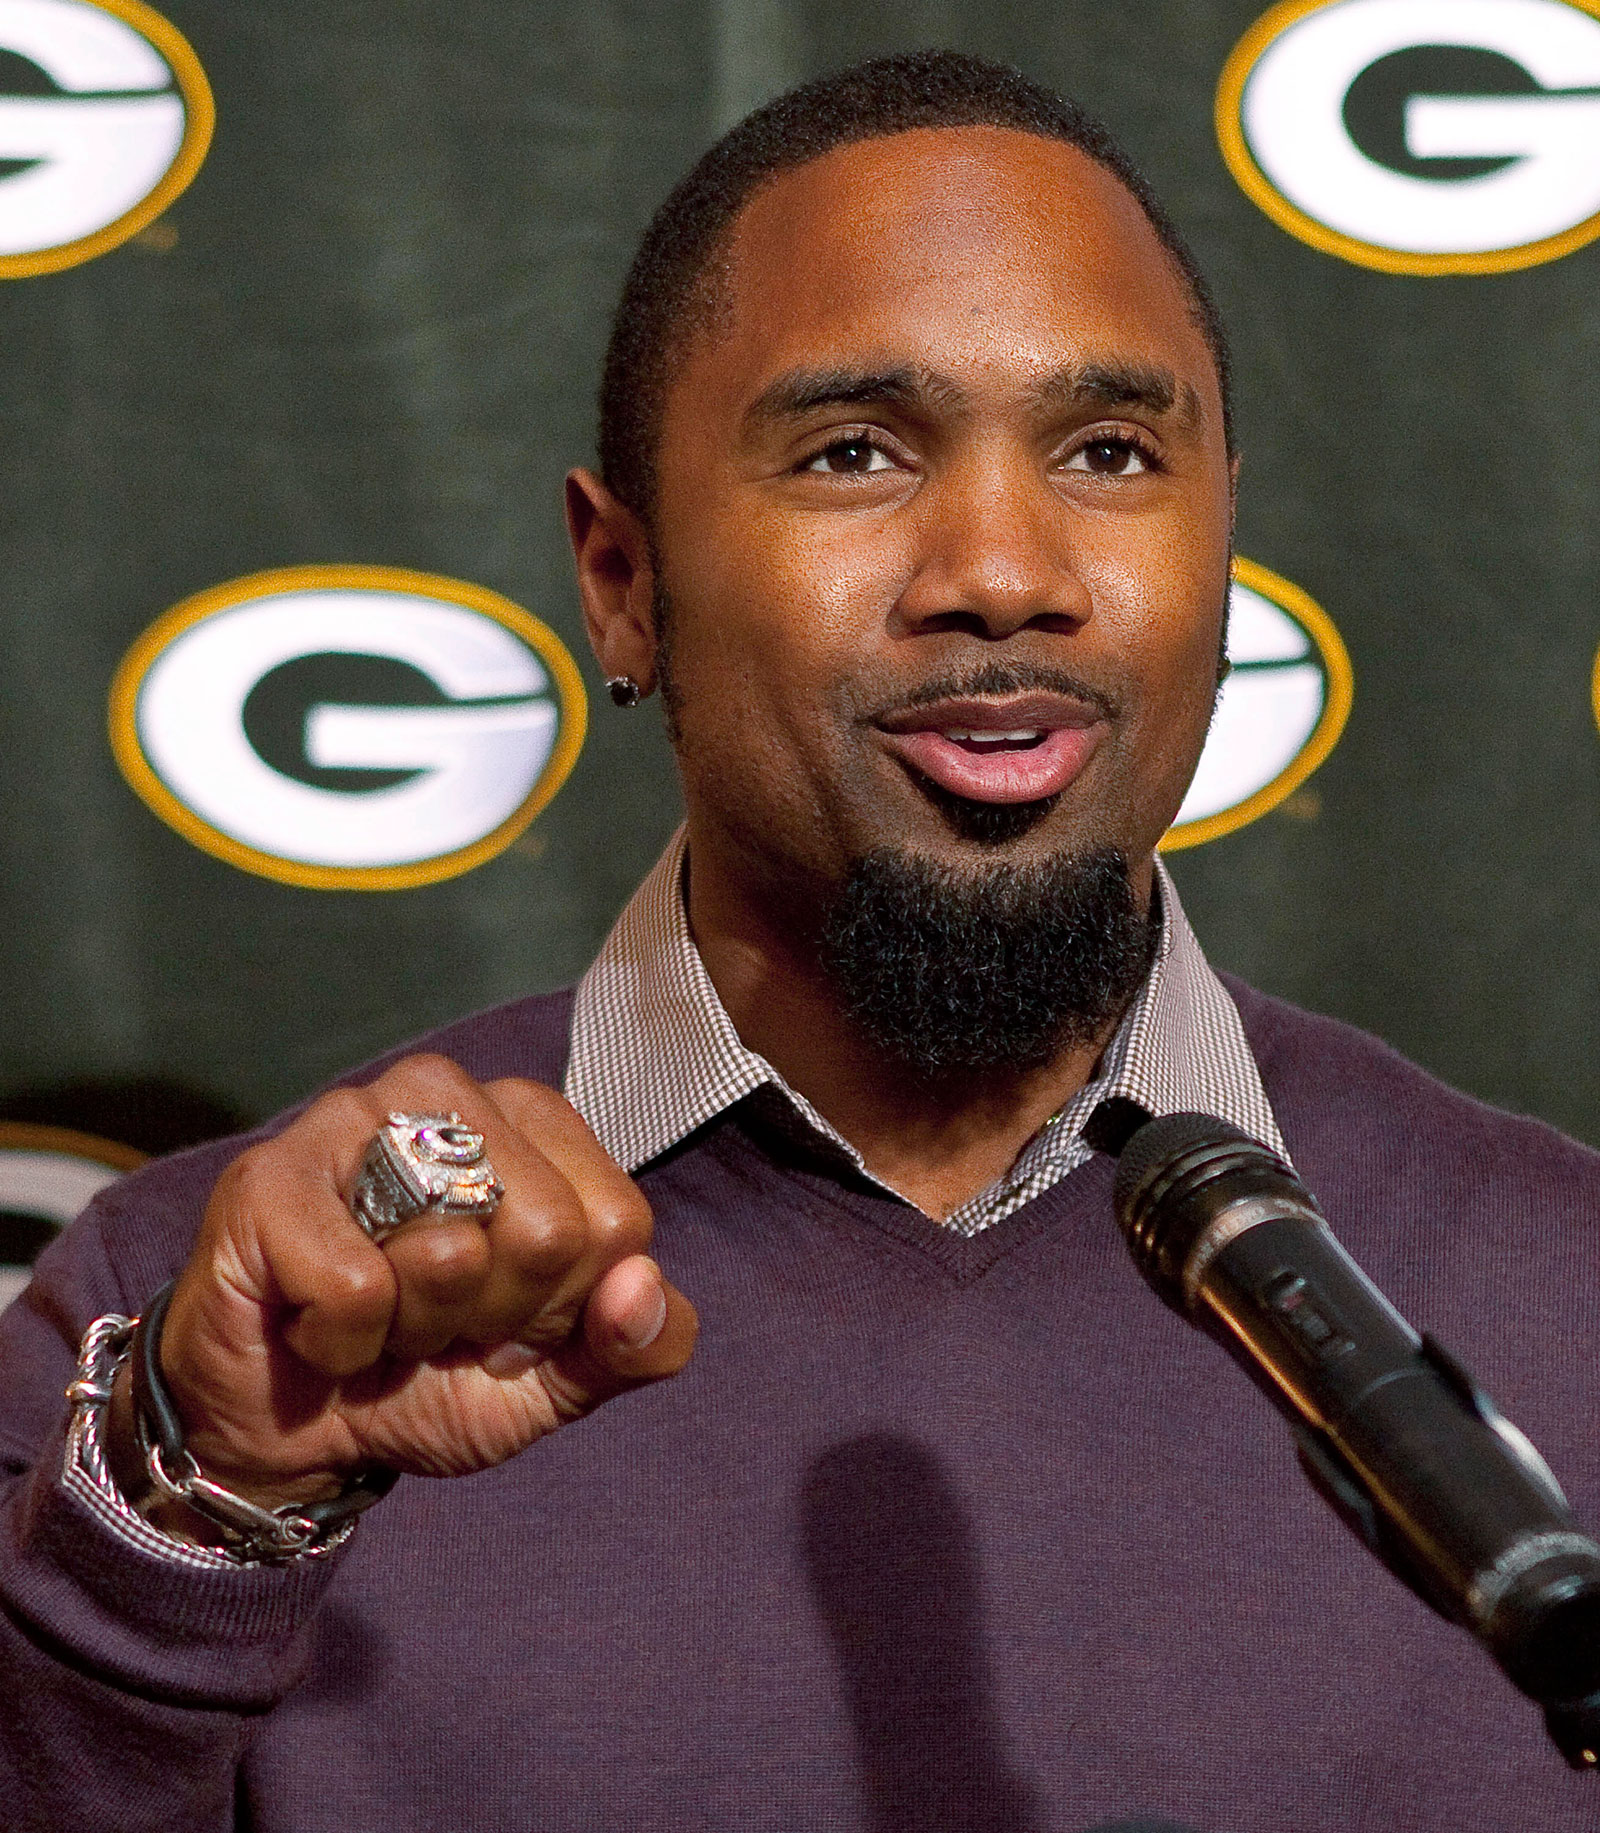 Green Bay Packers Super Bowl XLV Diamond Champion Rings